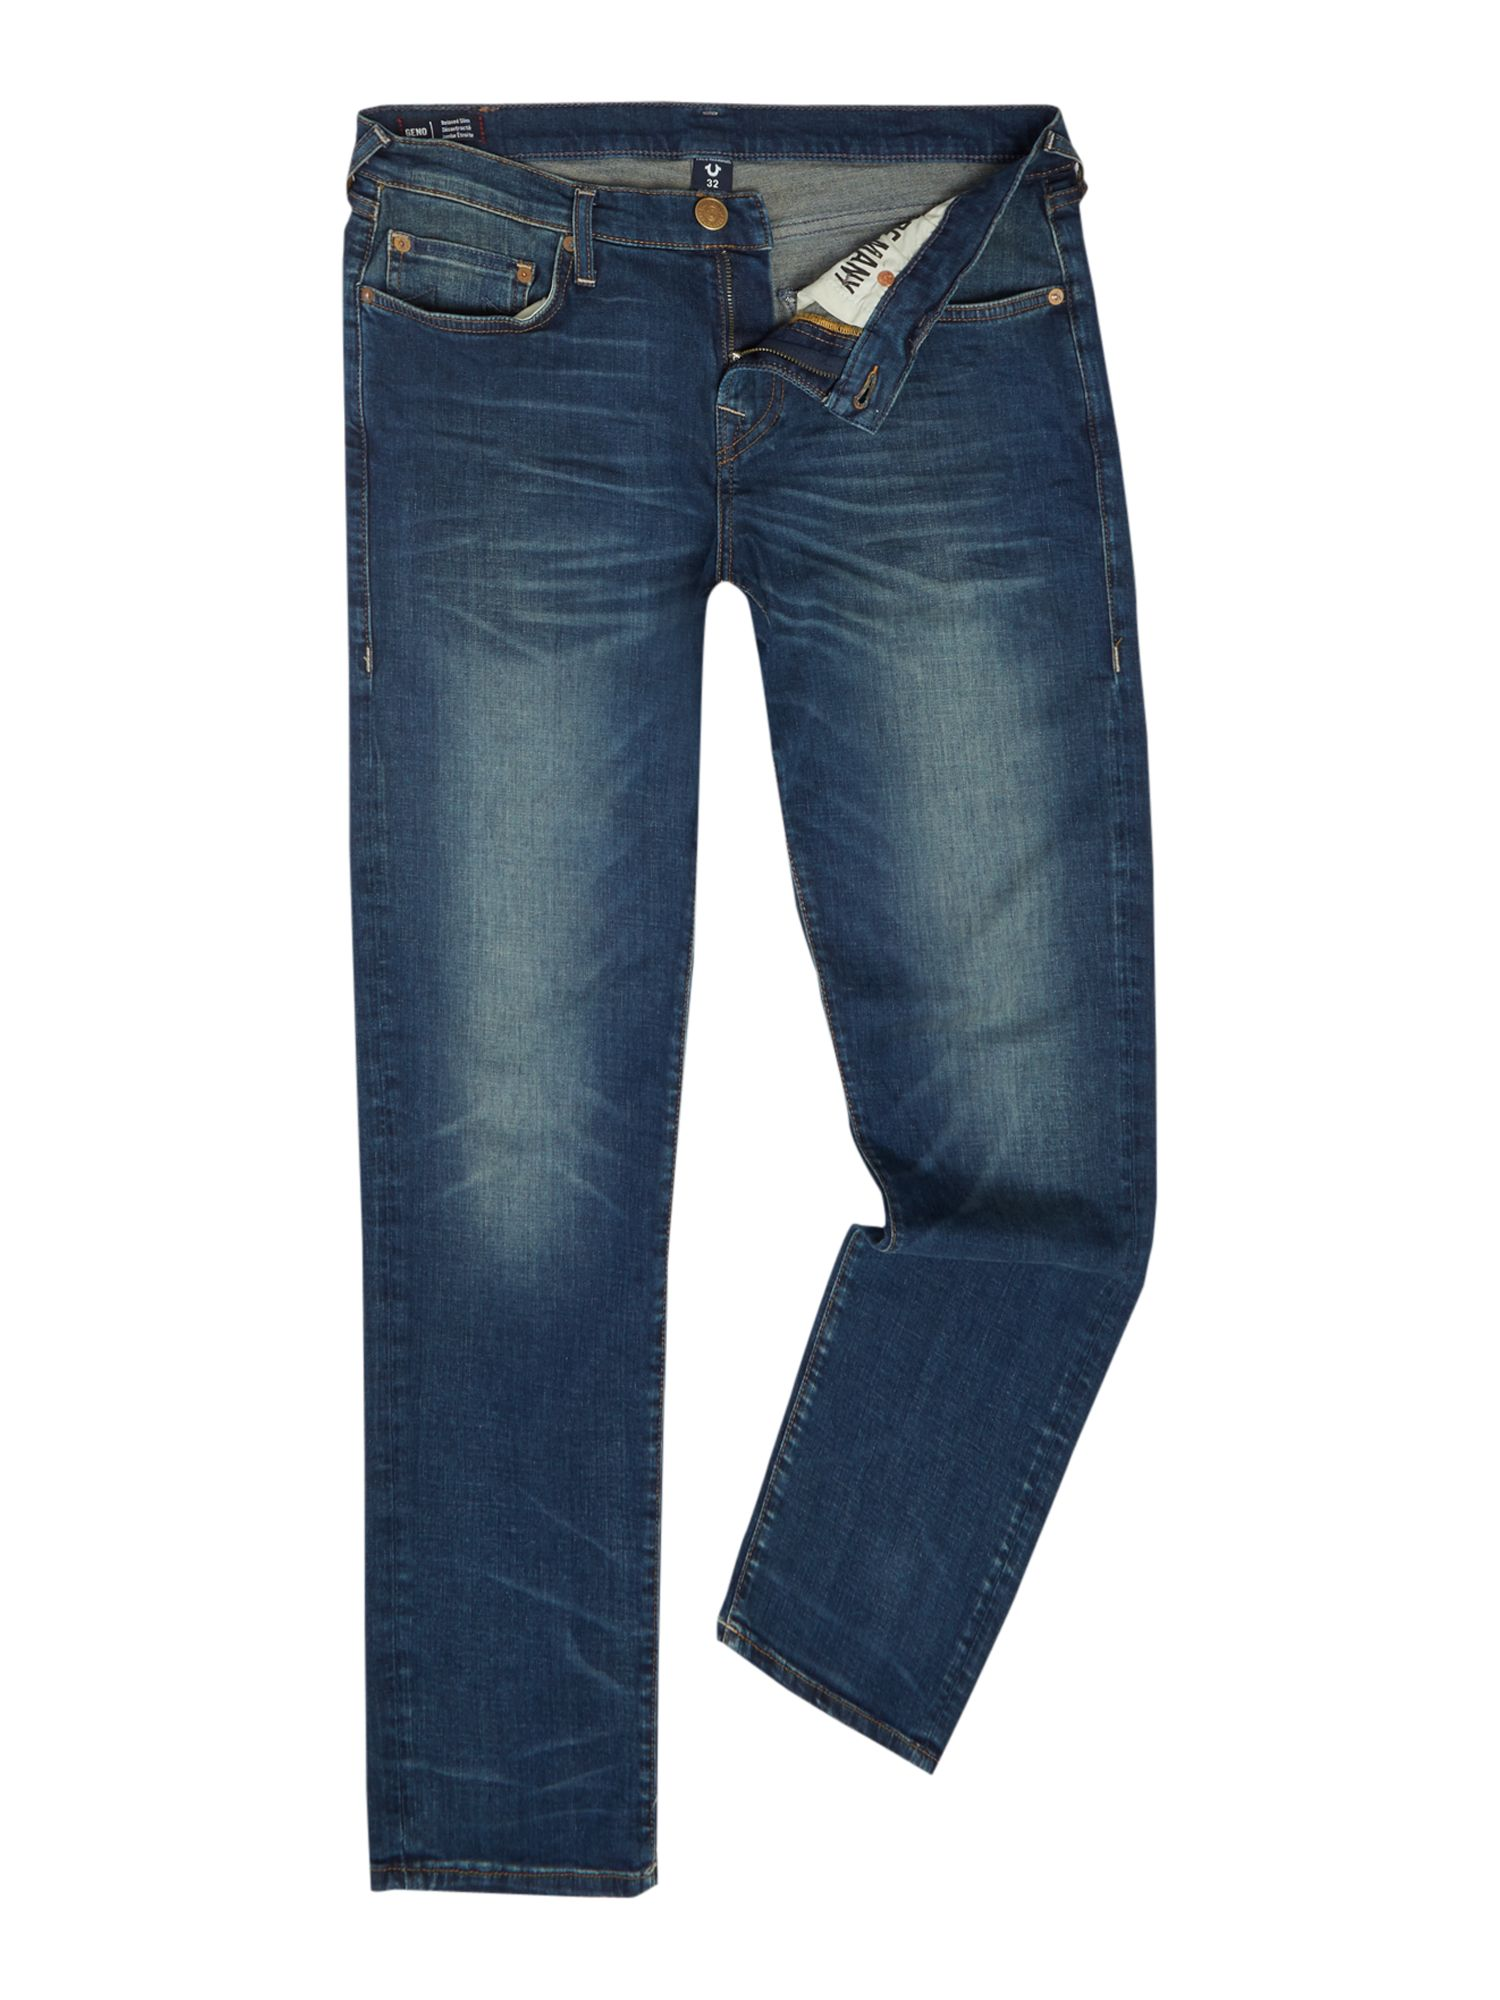 Mens Geno Dusty Rider Mid Wash Tapered Jeans, Denim Mid Wash